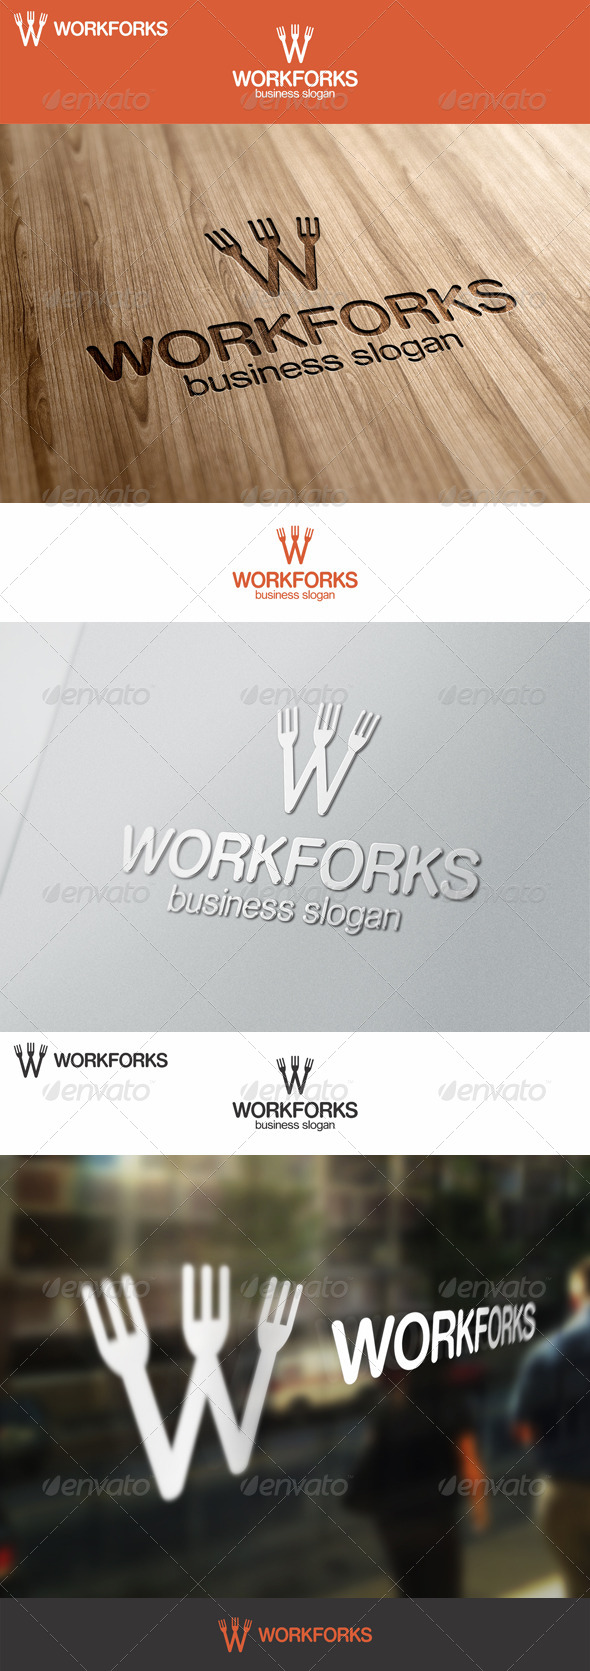 Work Forks Logo - Food Logo Templates